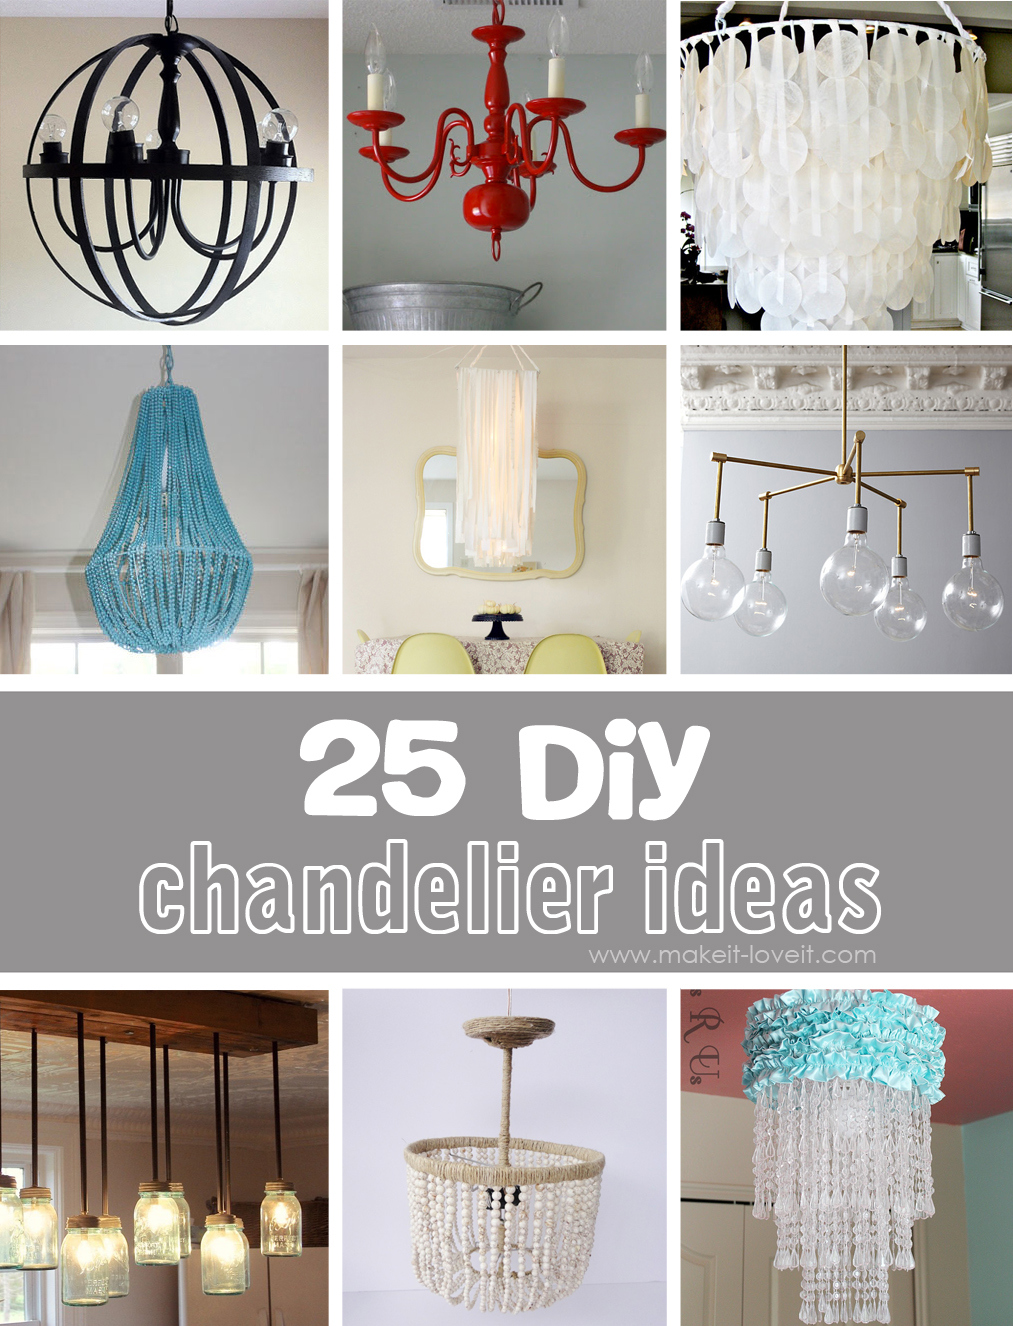 DIY Chandelier How to Make a Homemade Chandelier from scratch - 25 Different DIY TDCKWCL